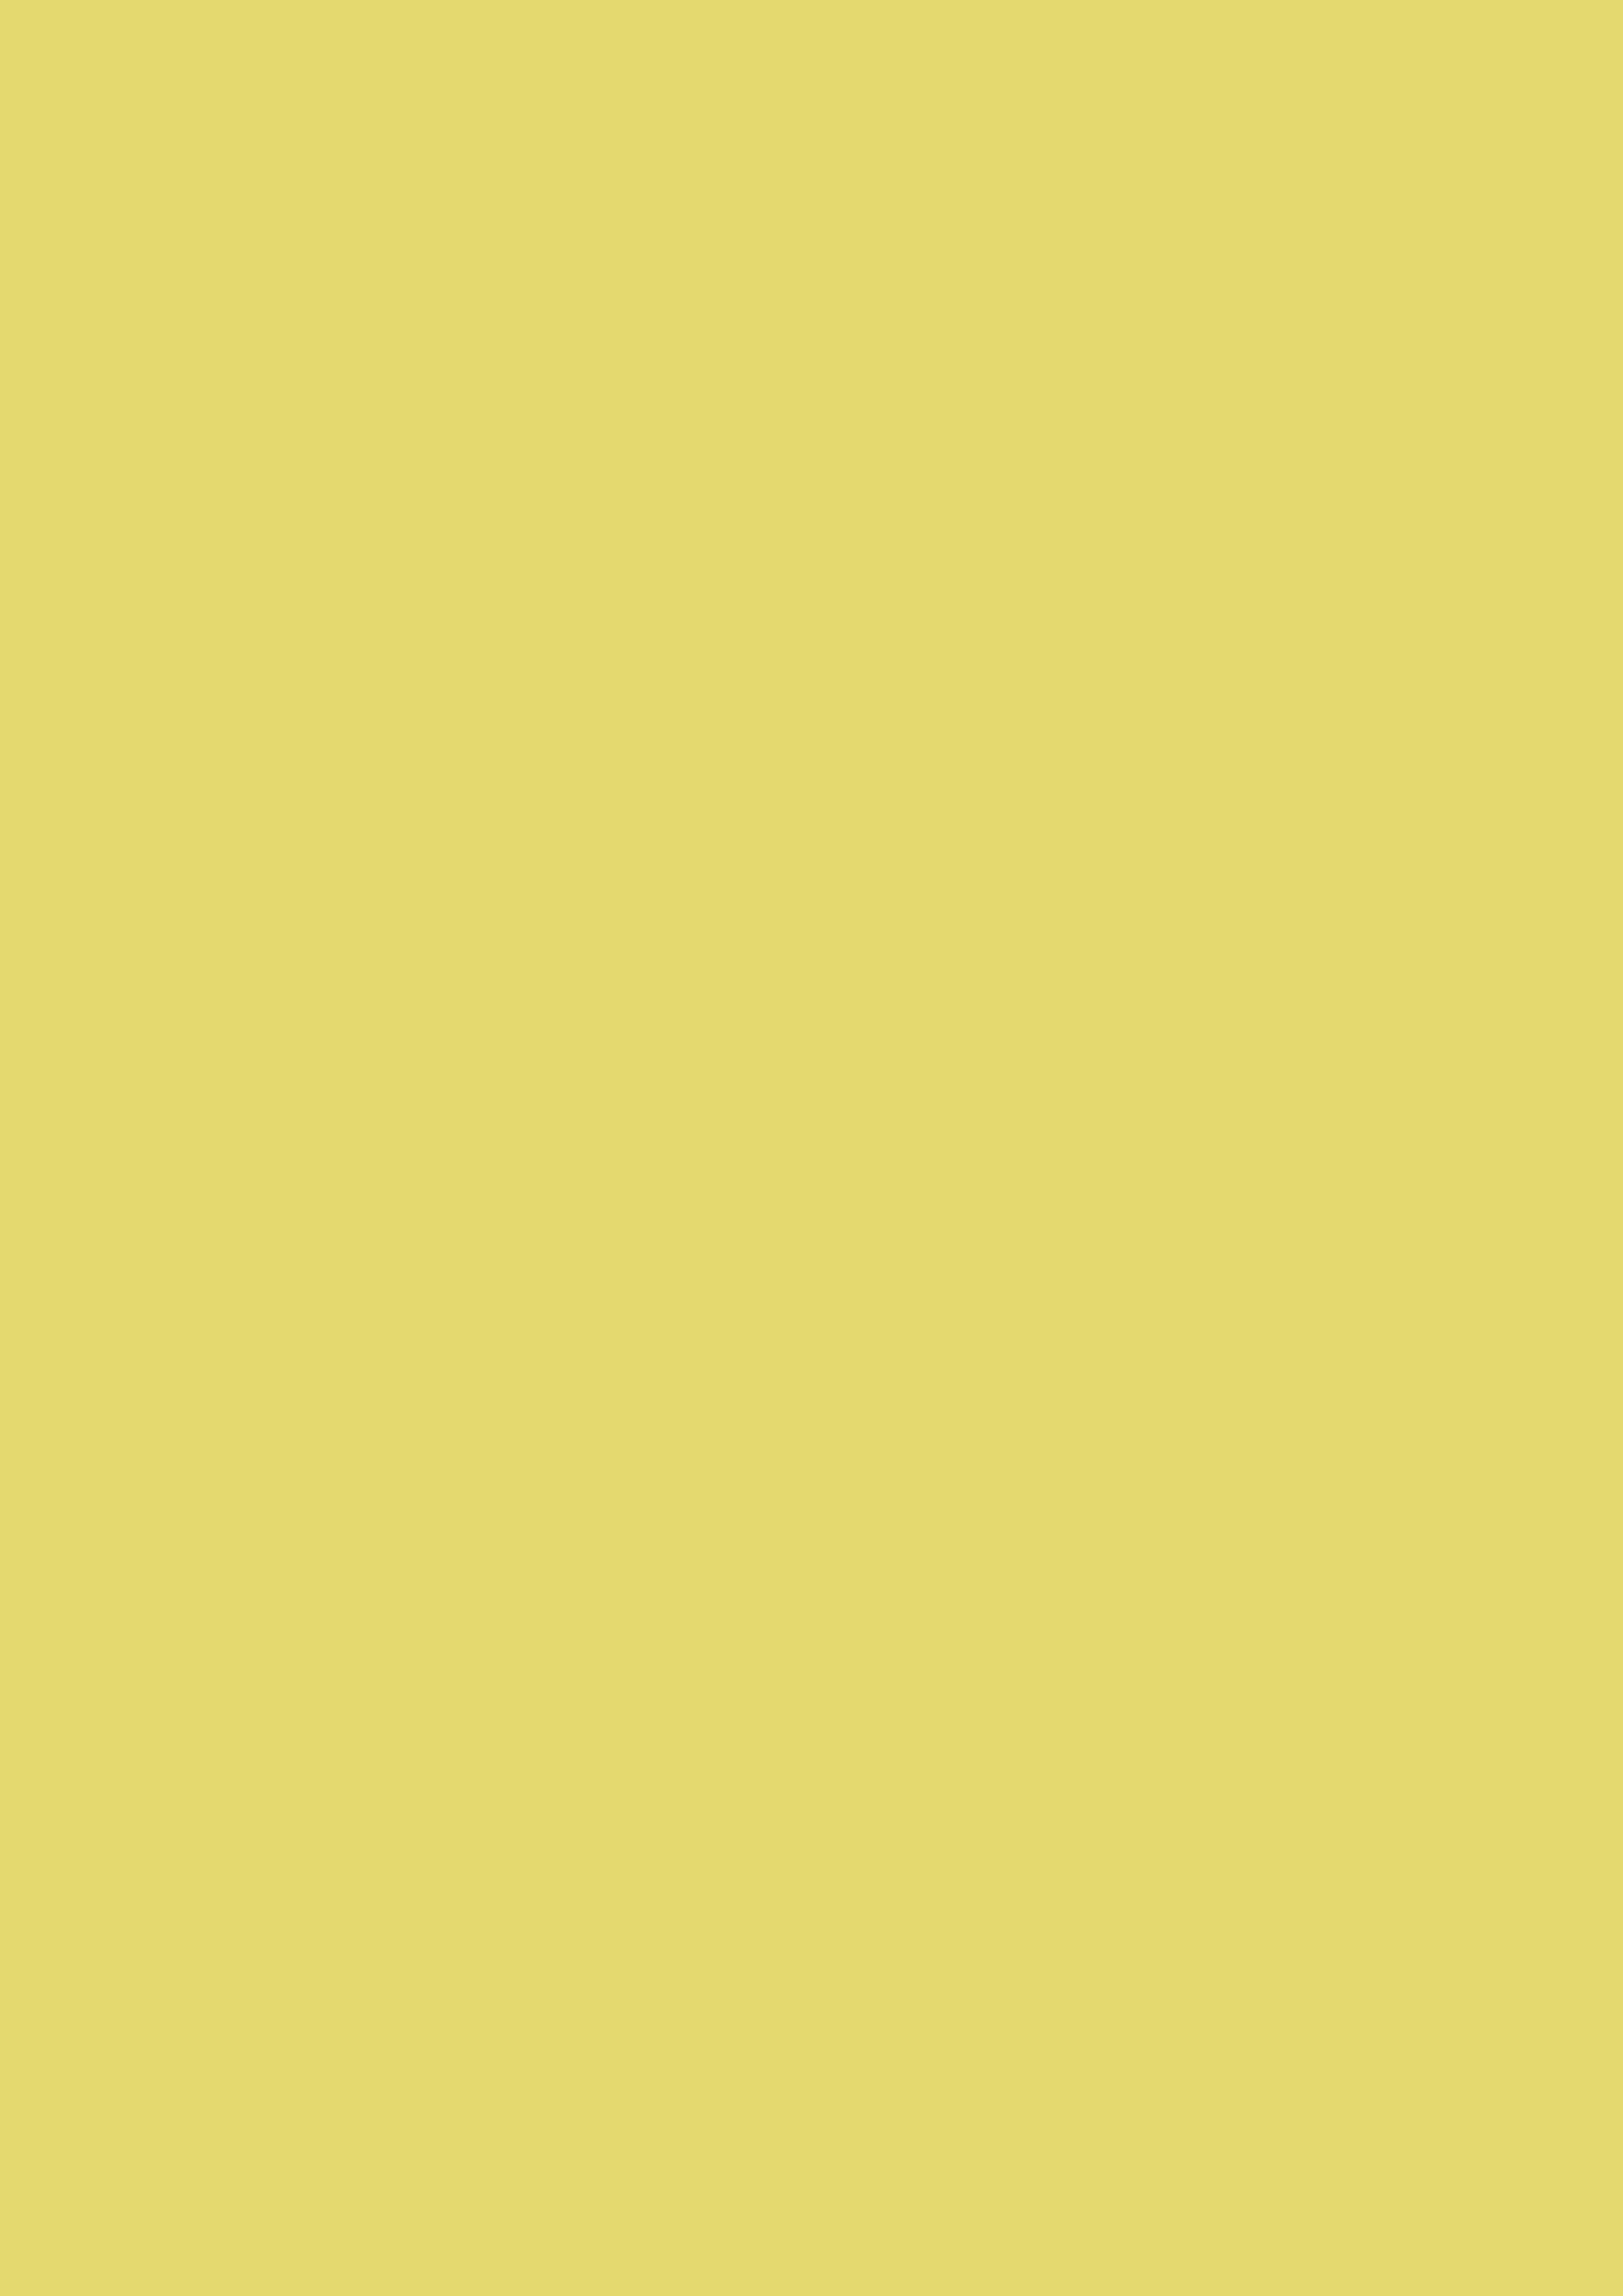 2480x3508 Straw Solid Color Background